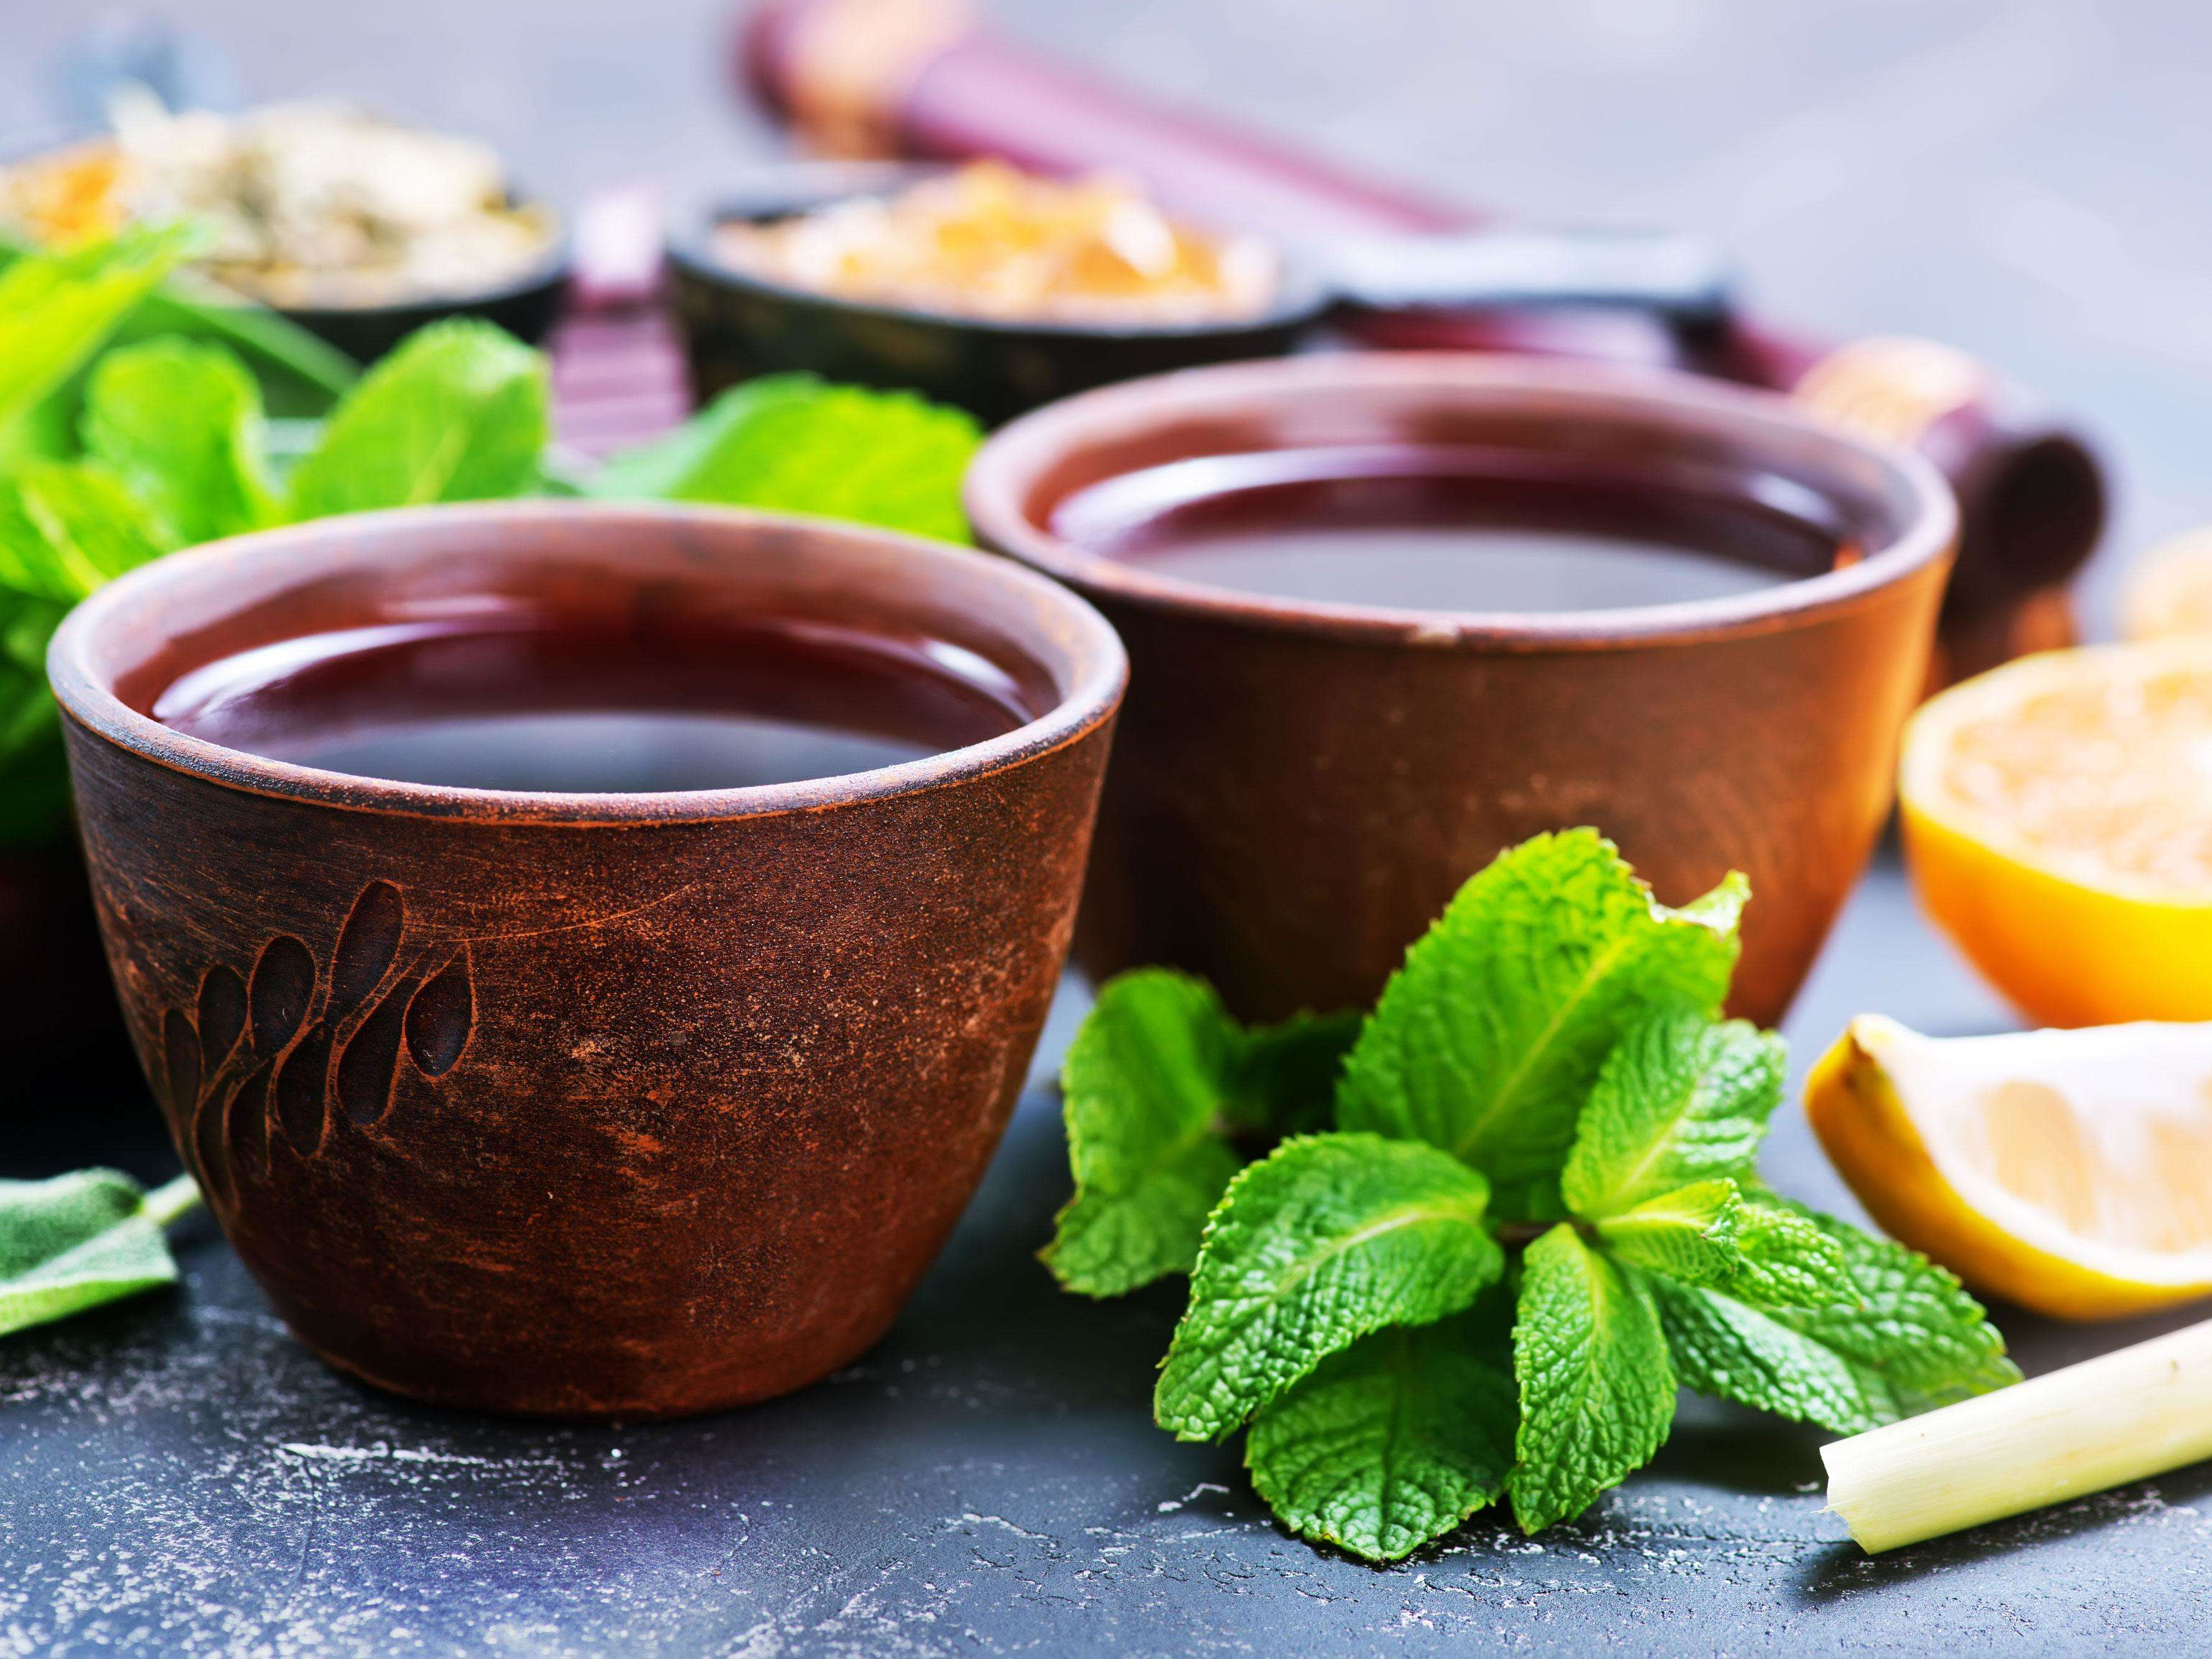 Drinking a hot cup of tea daily can lower risk of glaucoma